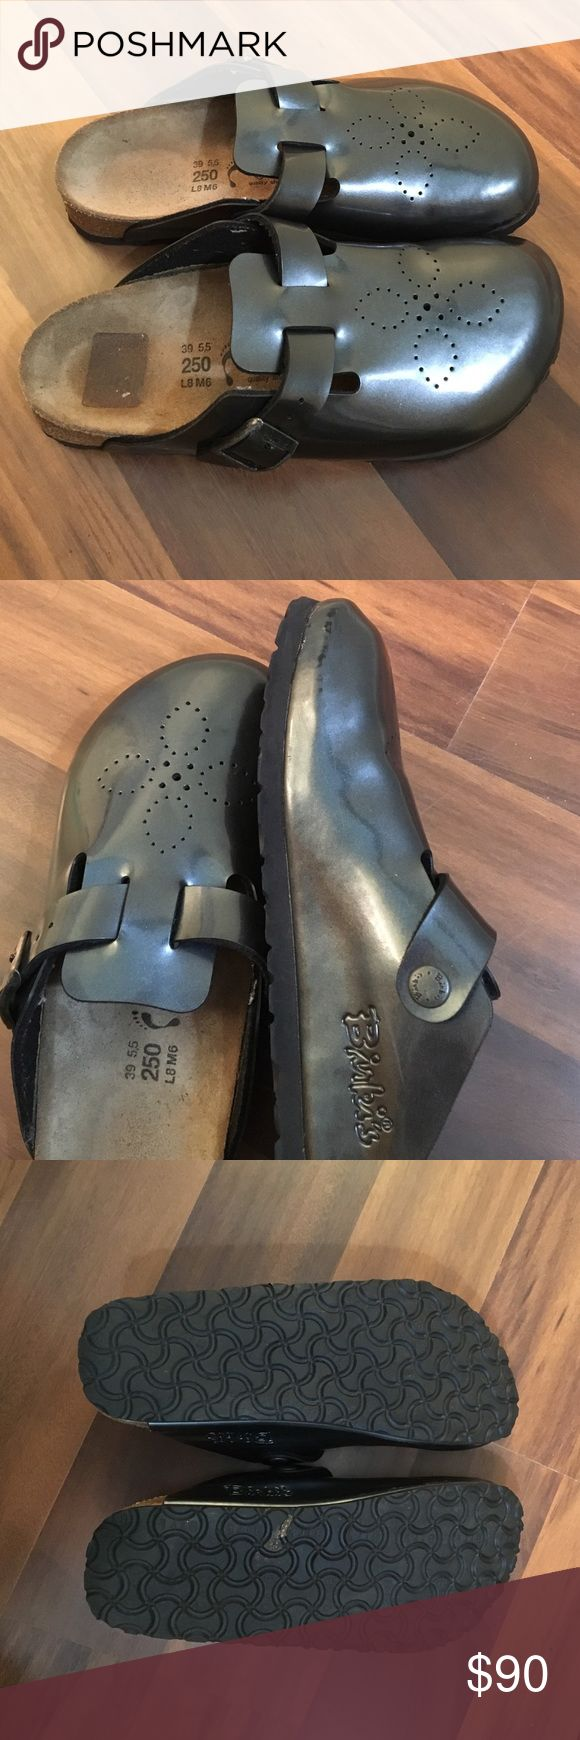 Birkenstock Mules, super cute!!! Super cute Birkenstock Mules! So much life left in these!!!! Pewter Grey with embossed flower on toes! Woman's 8!! I've never seen another pair of these! Birkenstock Shoes Mules & Clogs